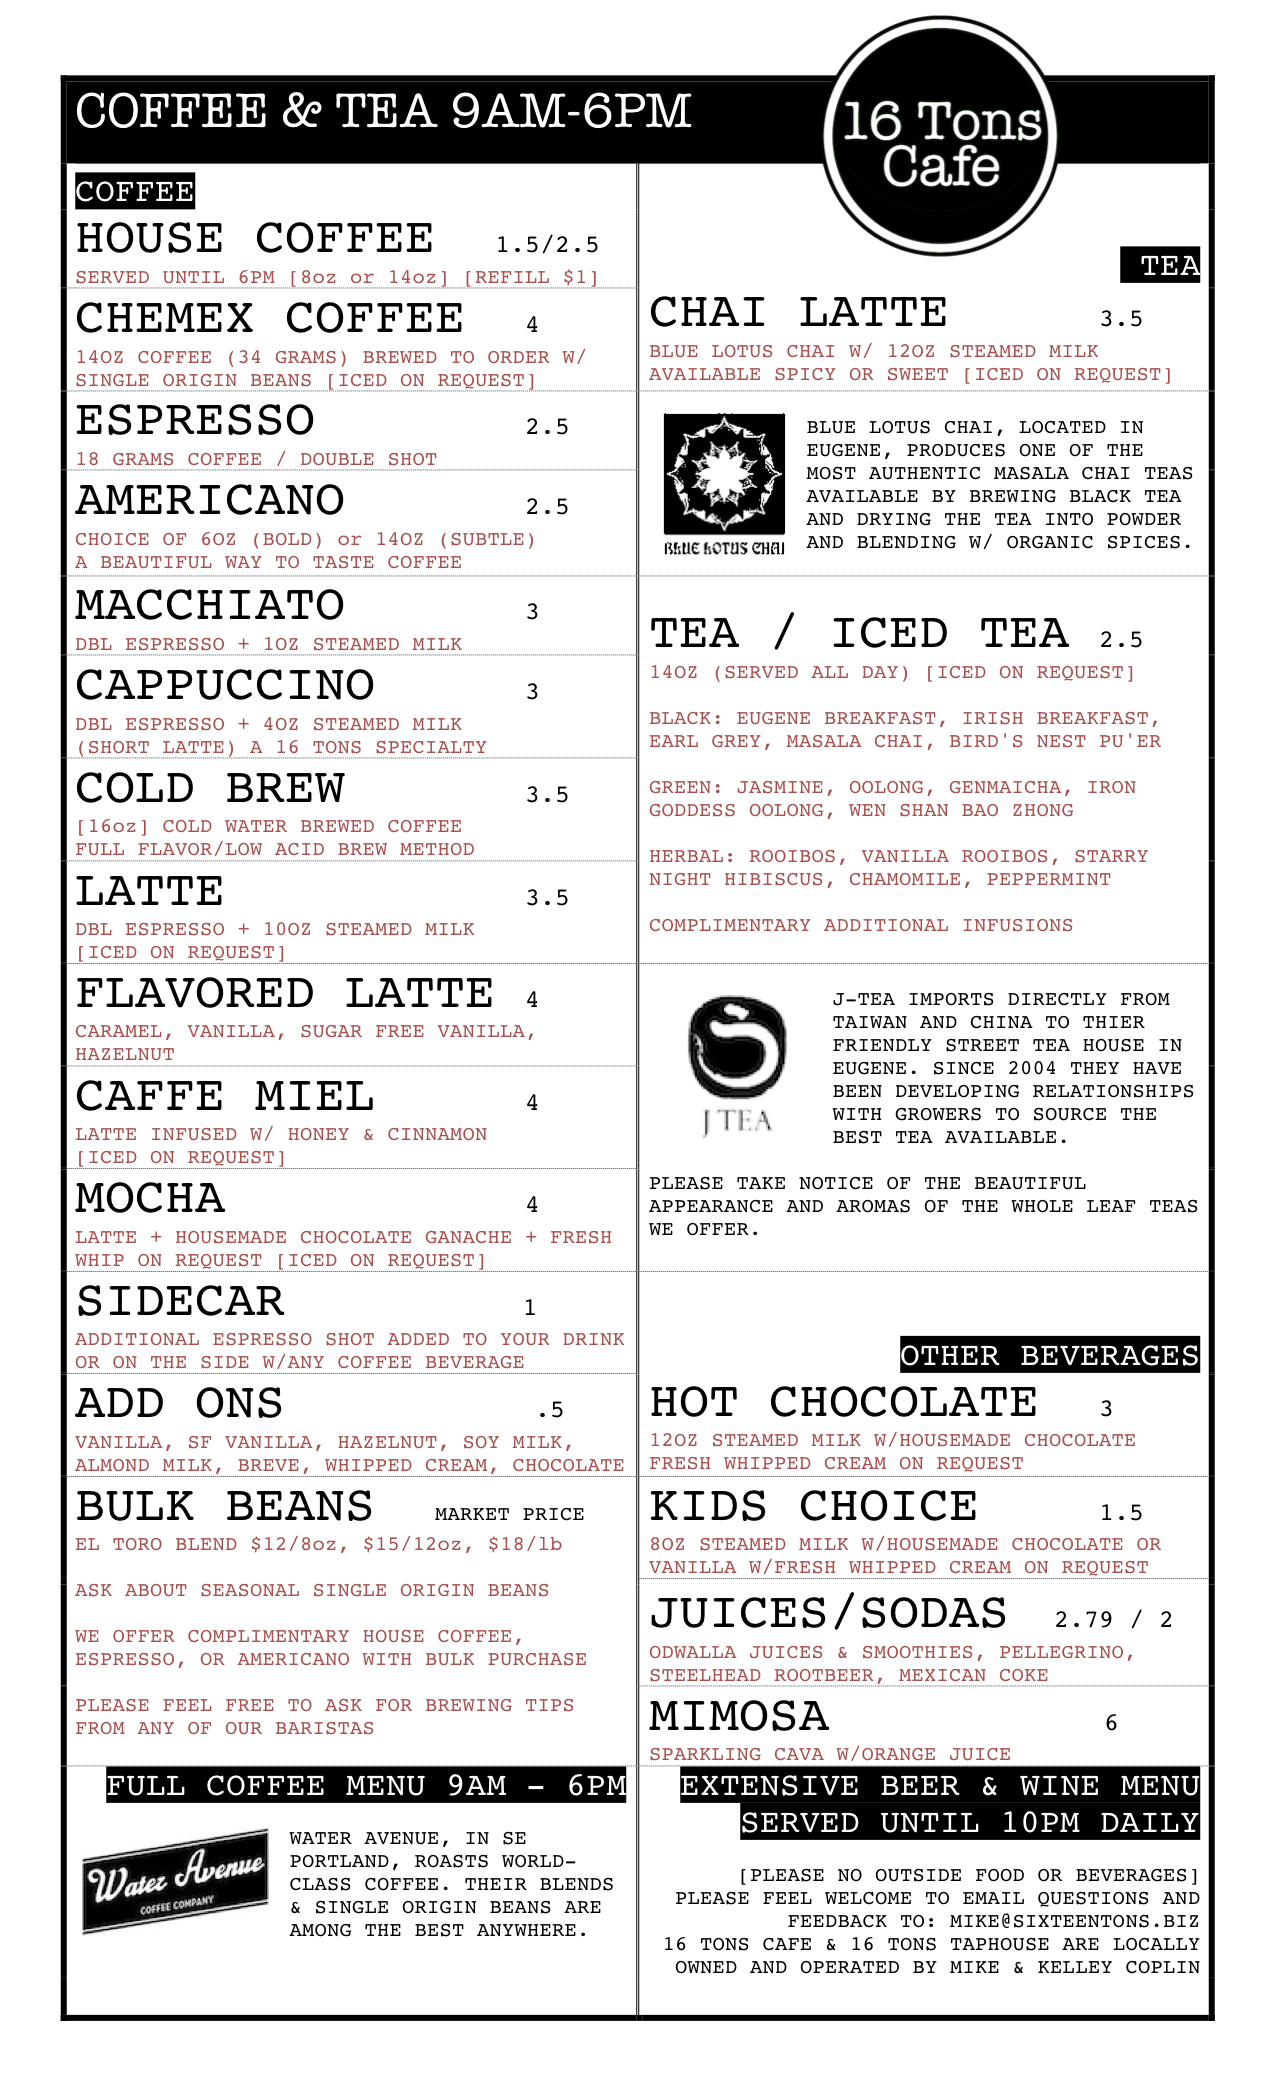 16 Tons Coffee Menu Dec 2-2013